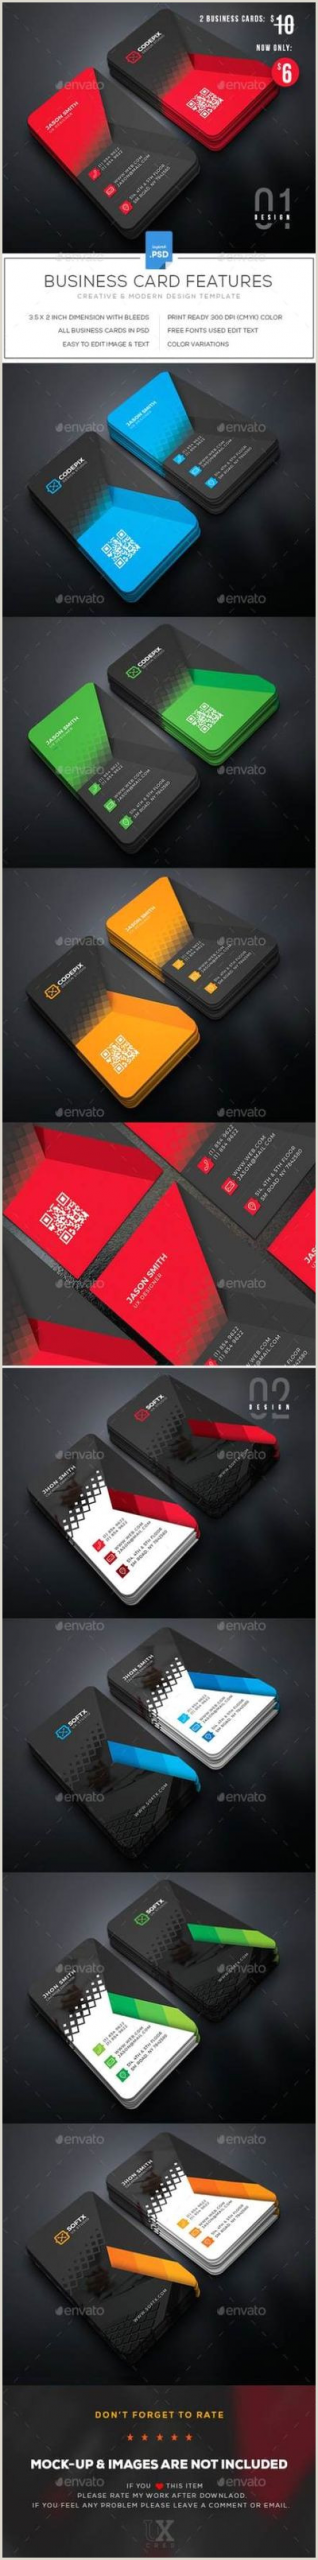 What Are The Best Business Cards? Creative Modern Polygon Business Card